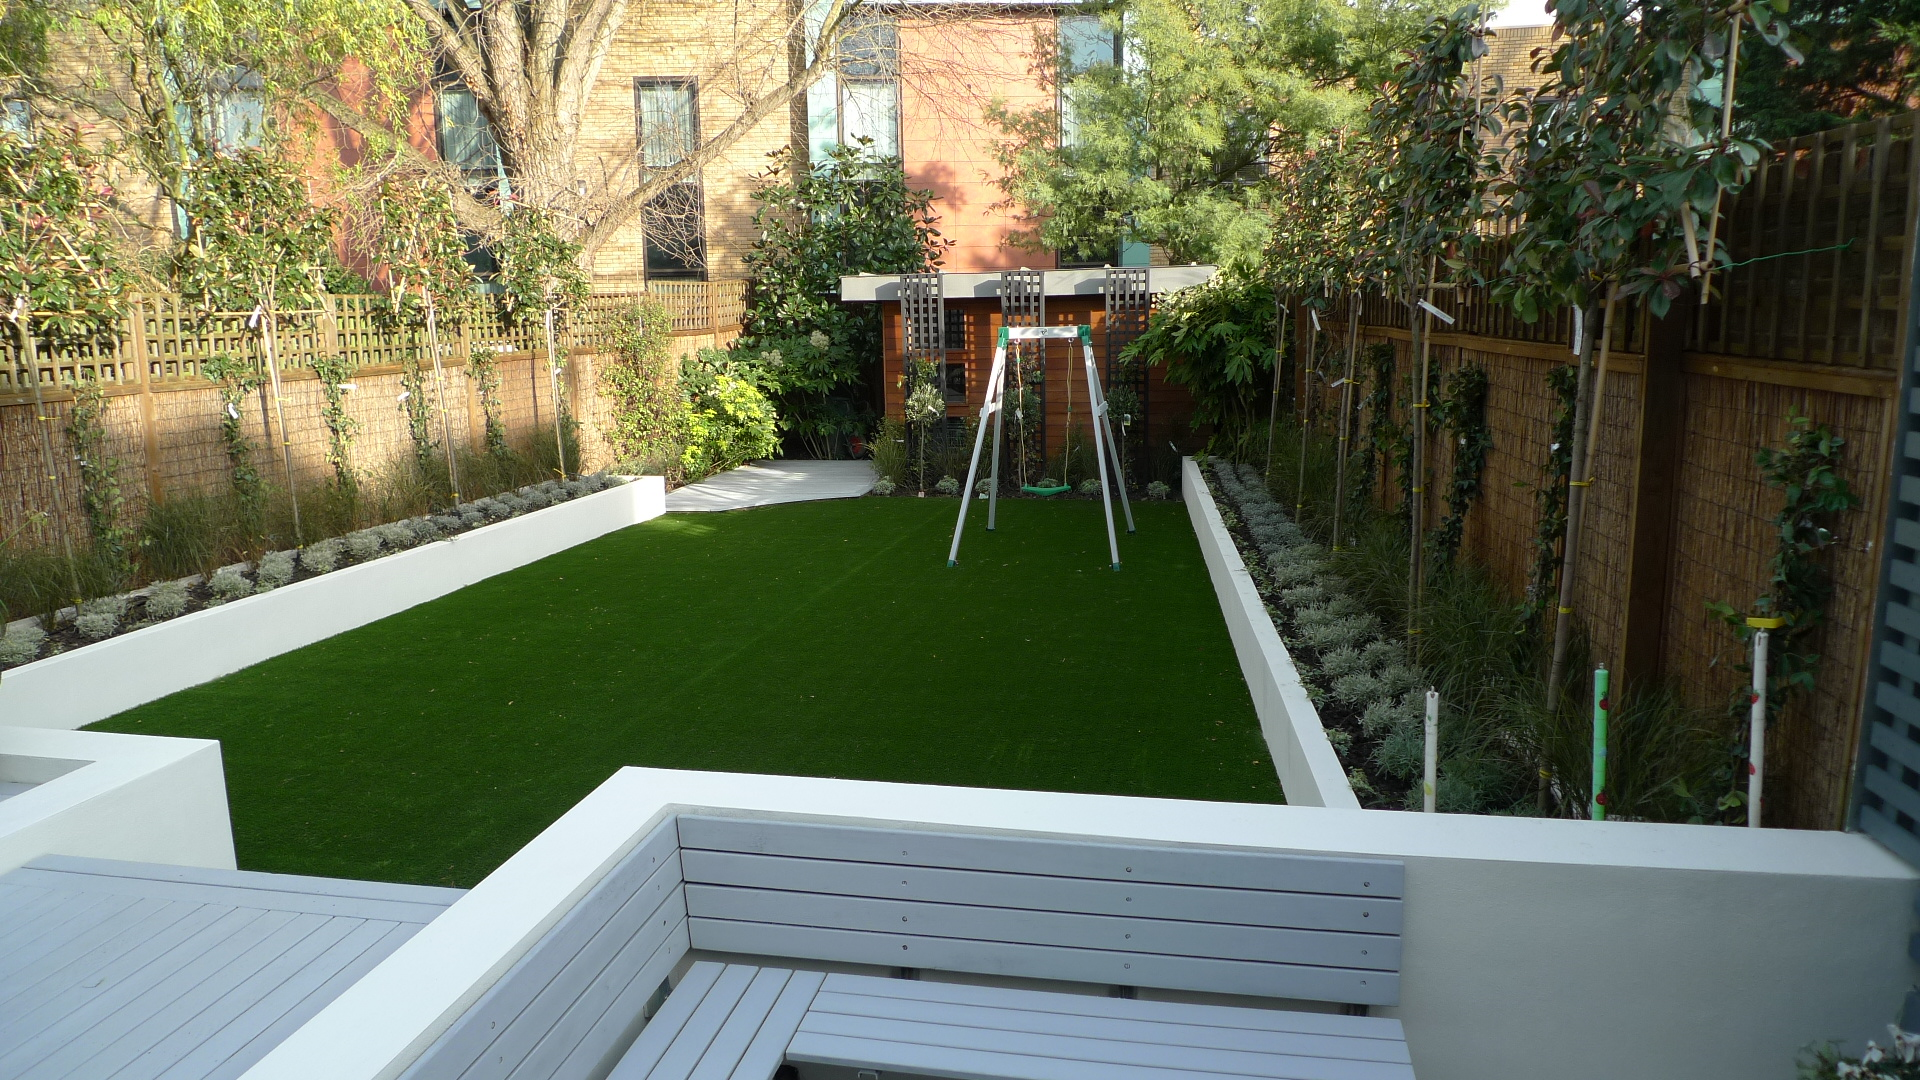 Modern garden design ideas london london garden design for Garden design ideas new build